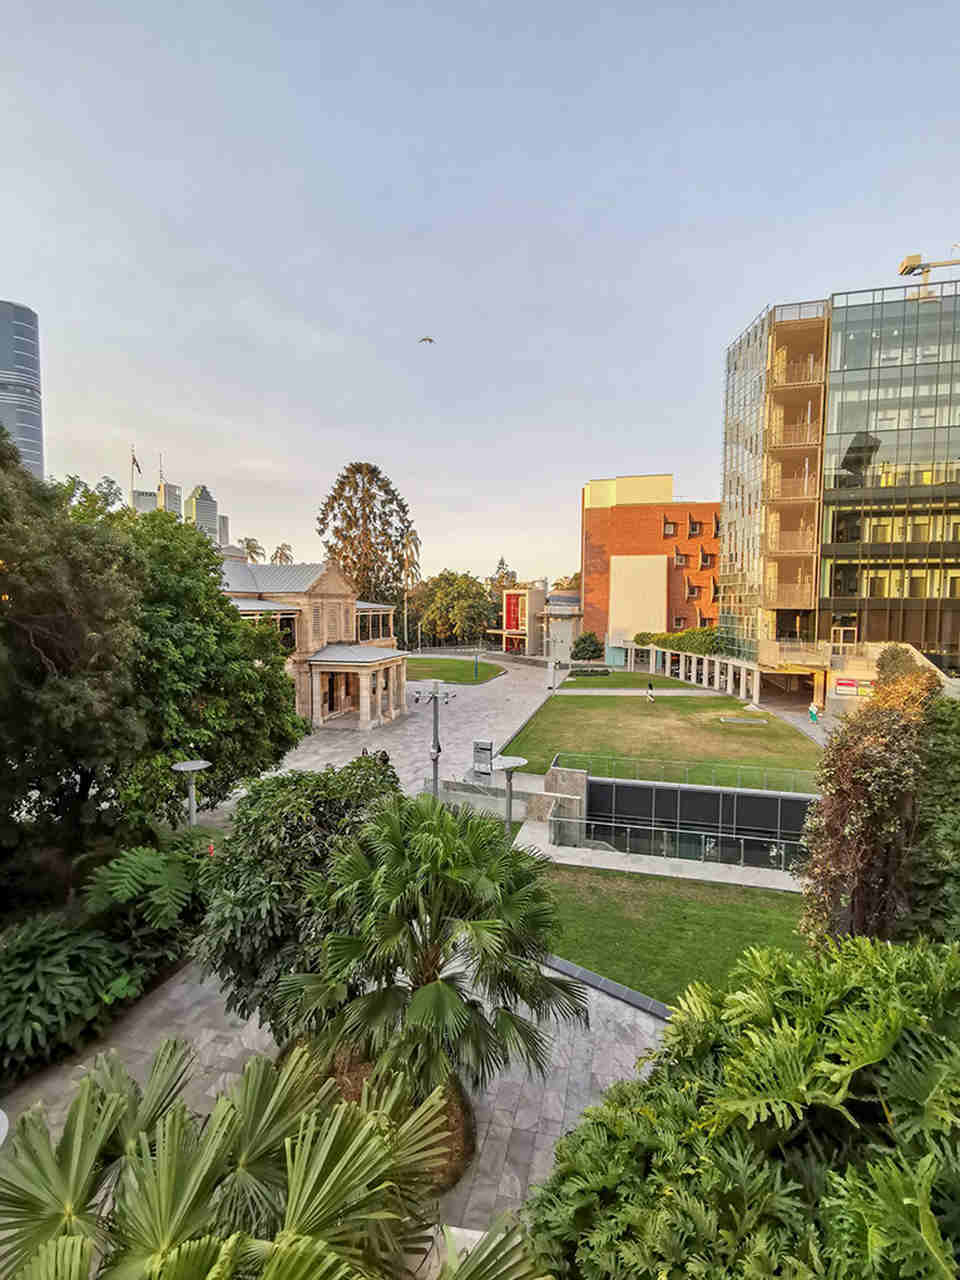 Sky, City, Urban area, Architecture, Building, Human settlement, Property, Daytime, Town, Metropolitan area, Real estate, Tree, Grass, Botany, Residential area, Urban design, Mixed-use, Cloud, House, Neighbourhood, QUT Gardens Point Campus, The University of Queensland